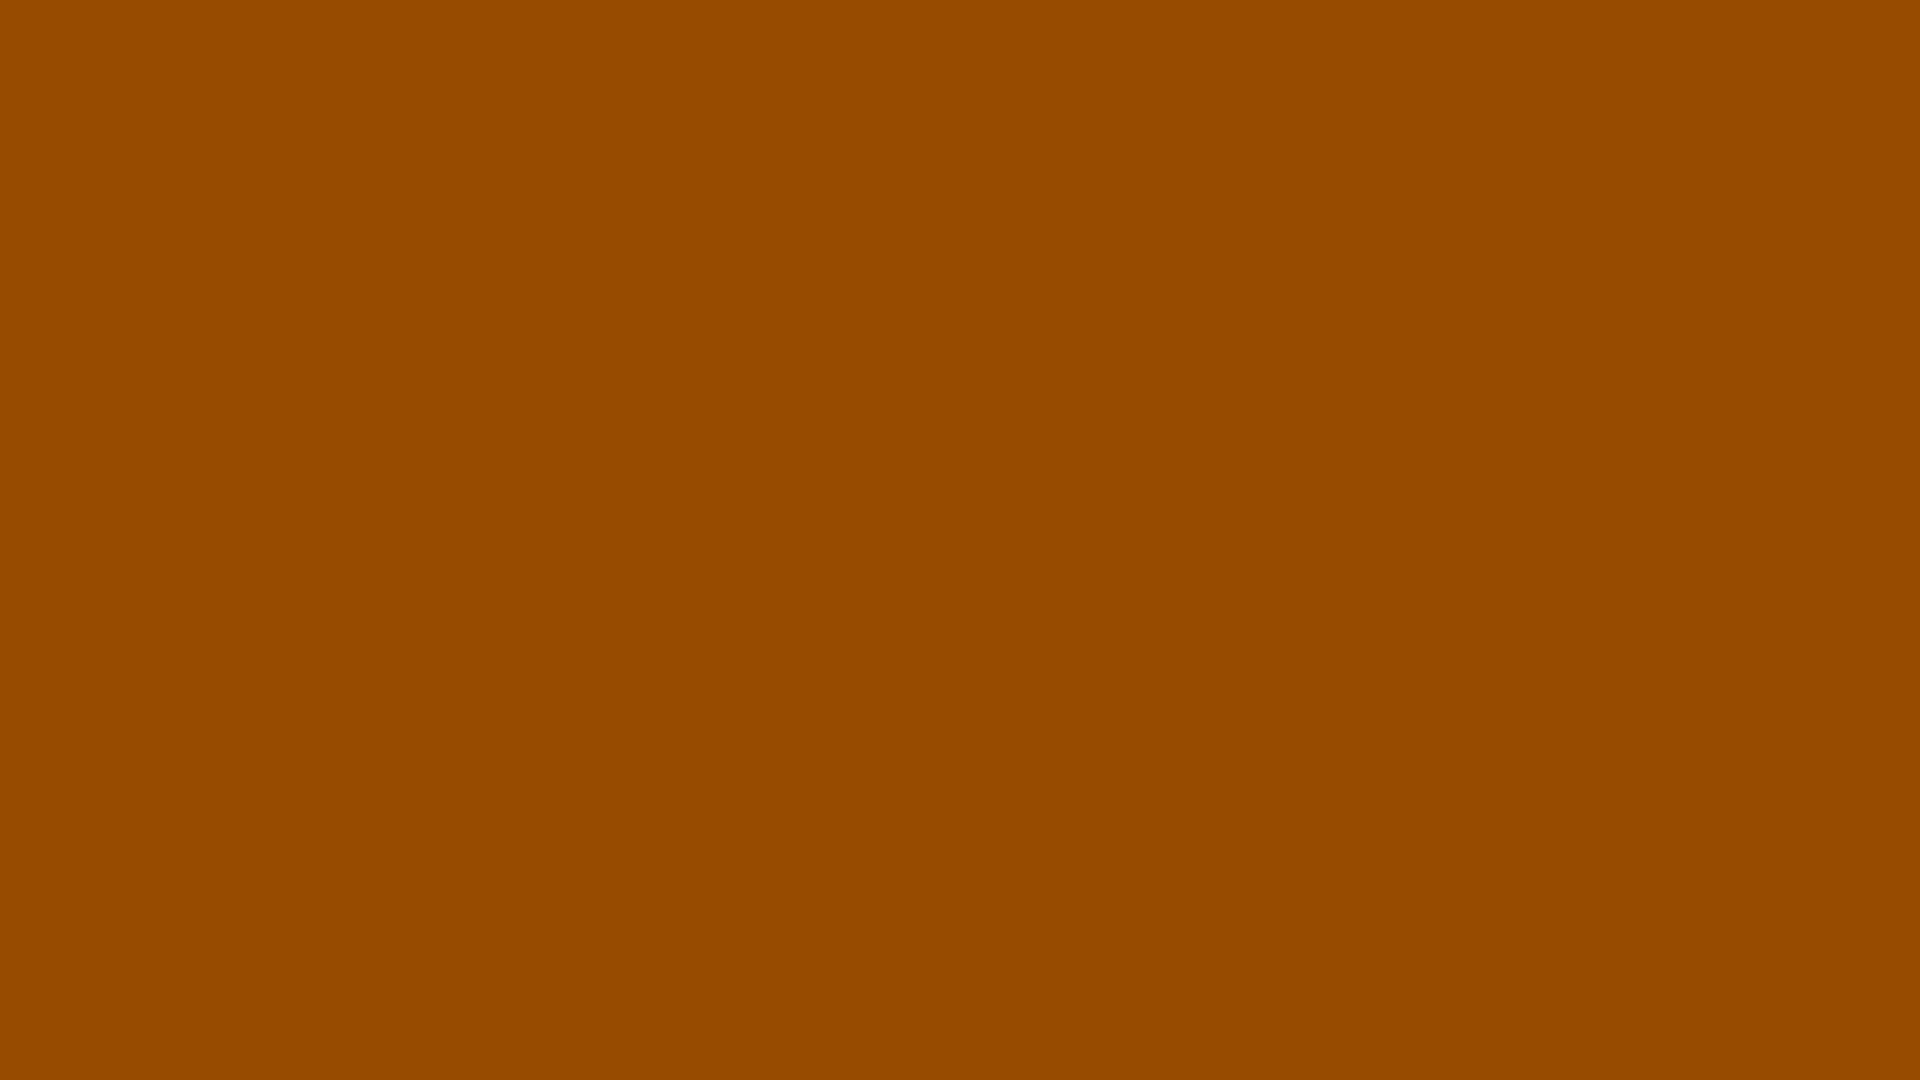 1920x1080 Brown Traditional Solid Color Background